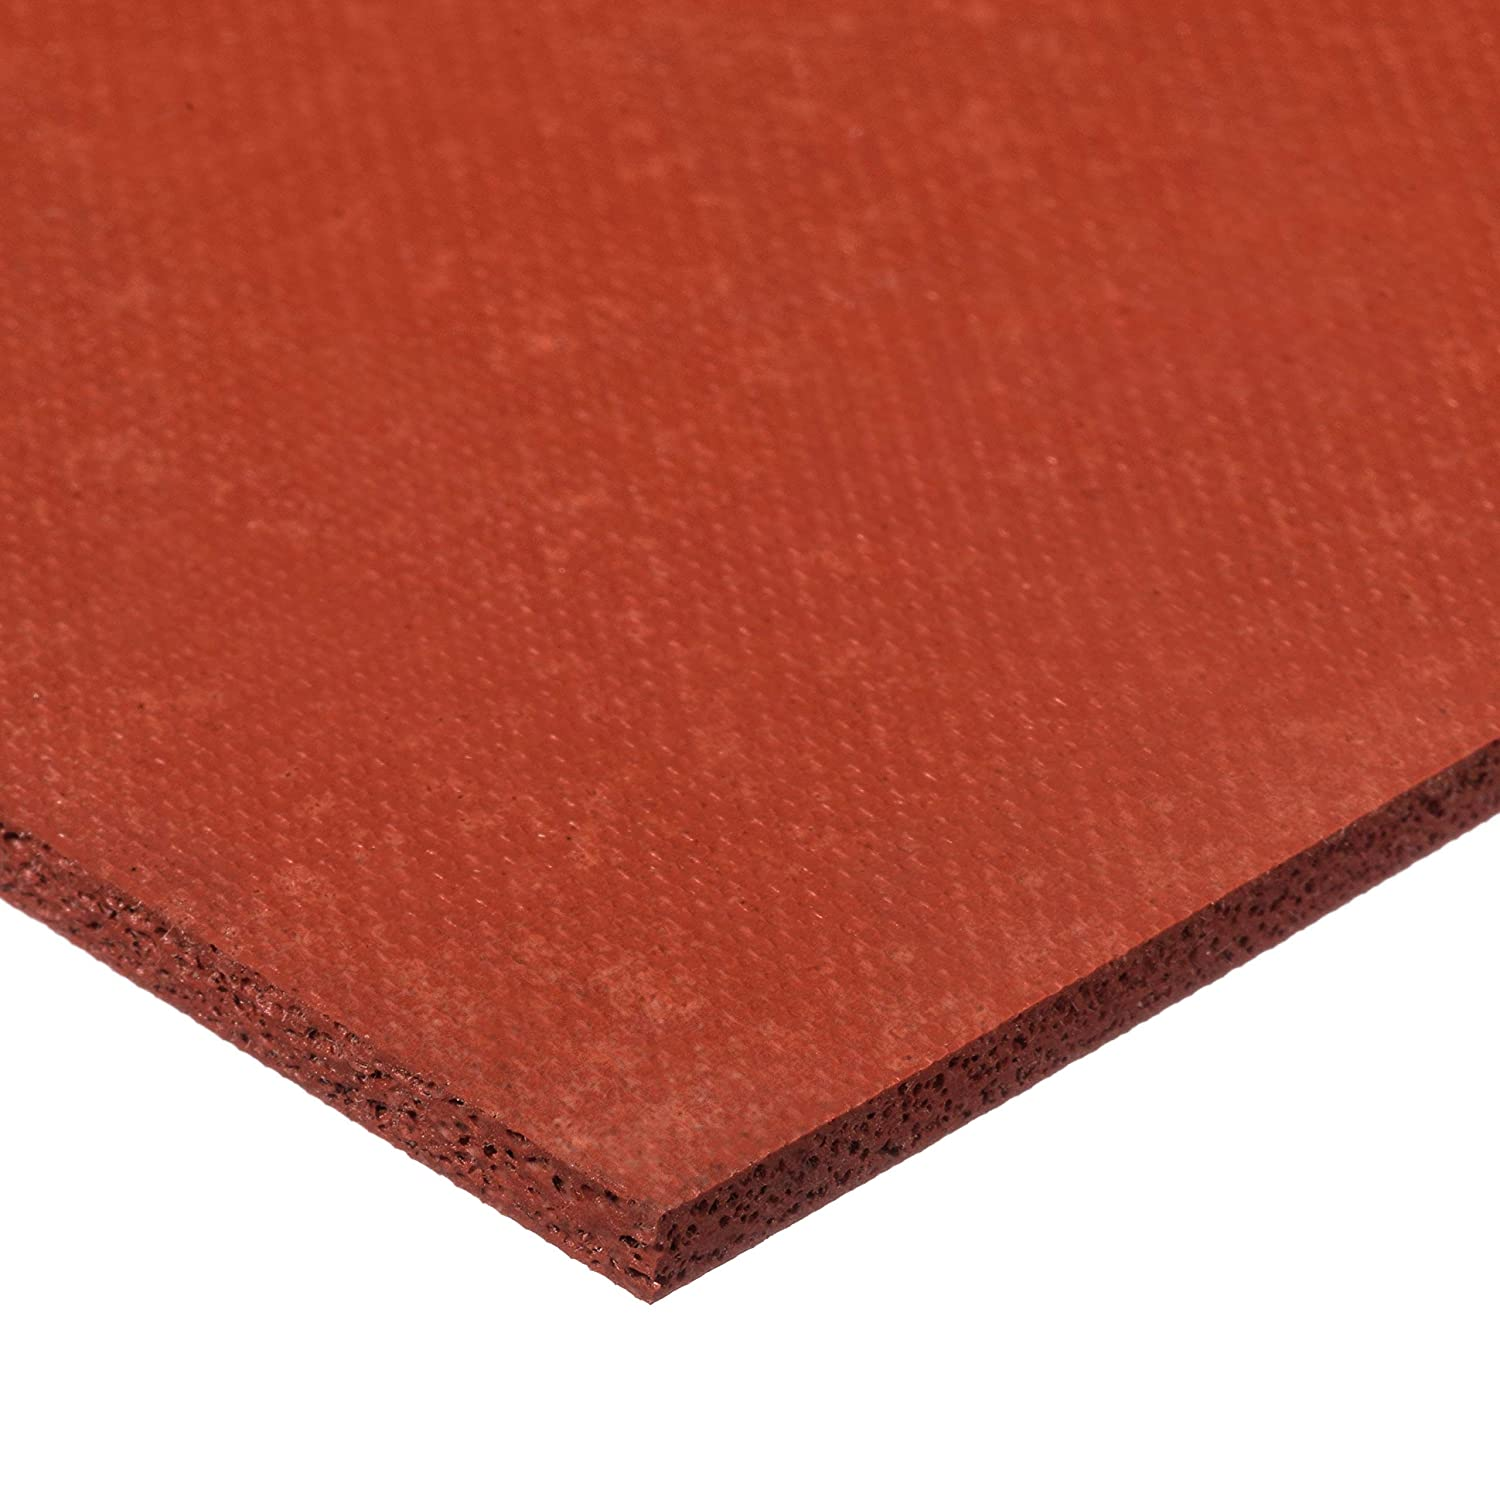 Silicone Foam Sheet with High Temp Adhesive We OFFer at cheap prices Sides Both Memphis Mall 16 3 - on